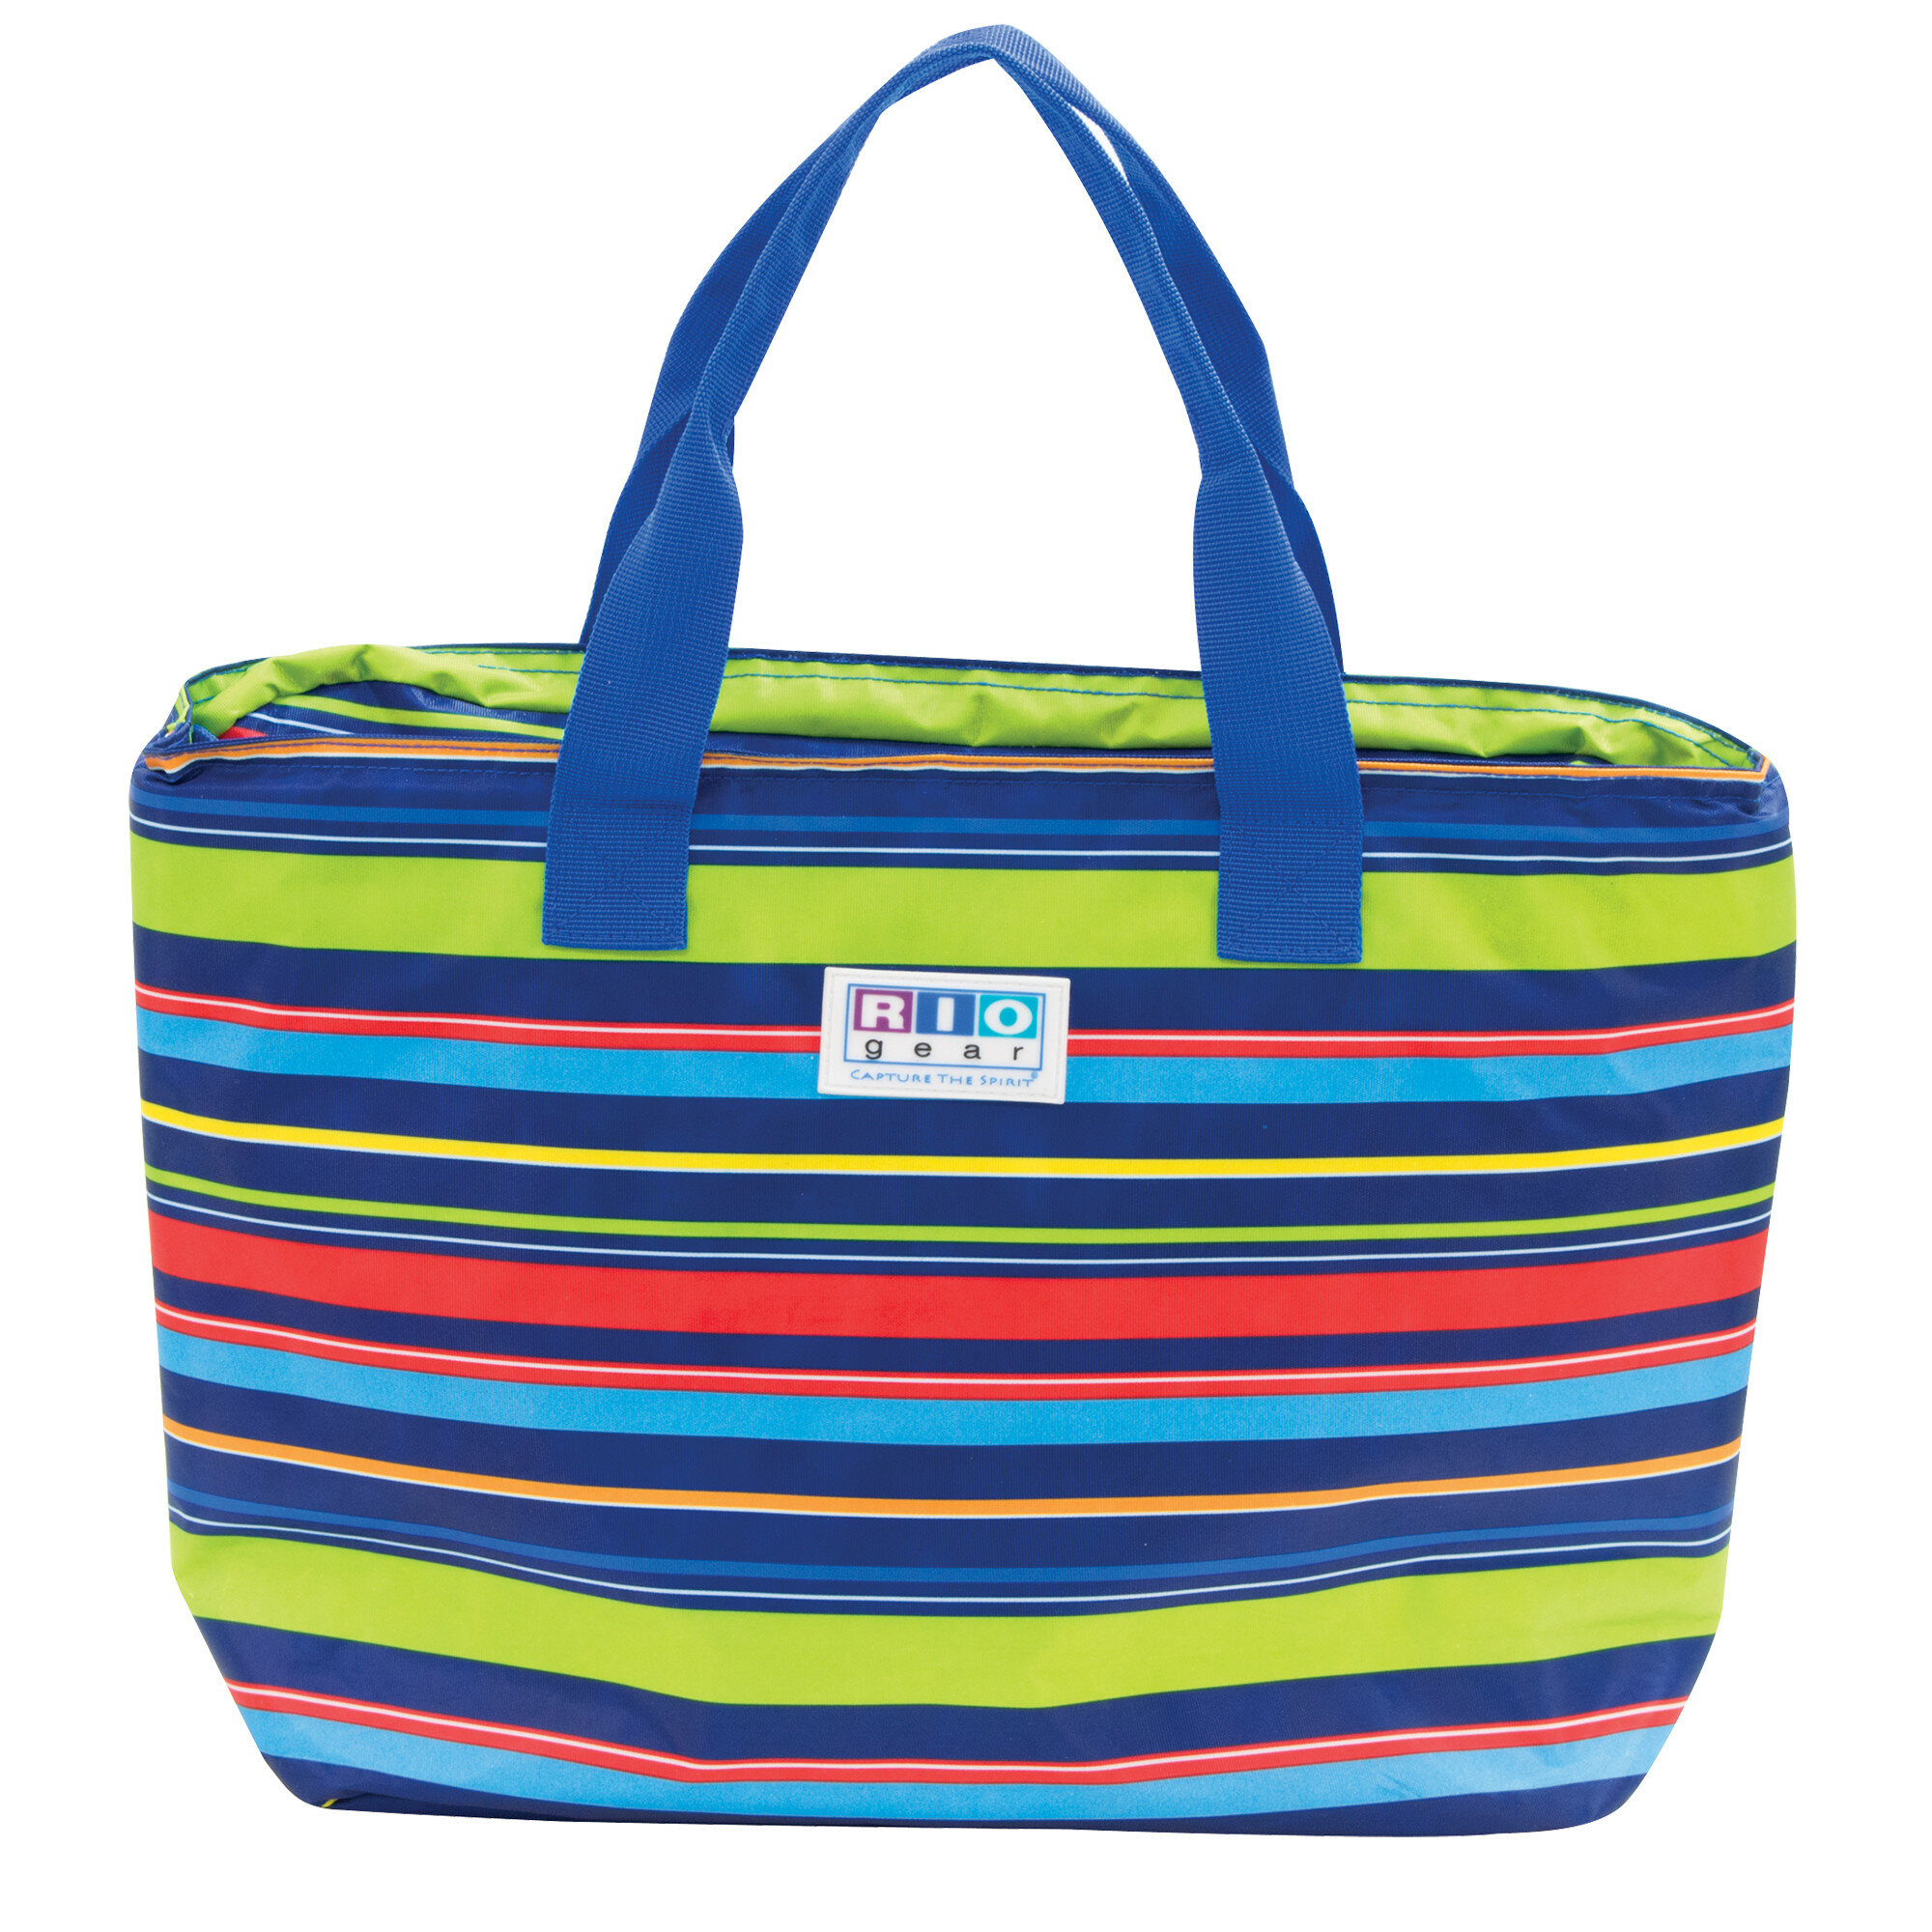 20 Can Gear Insulated Tote Bag Stripe Cooler